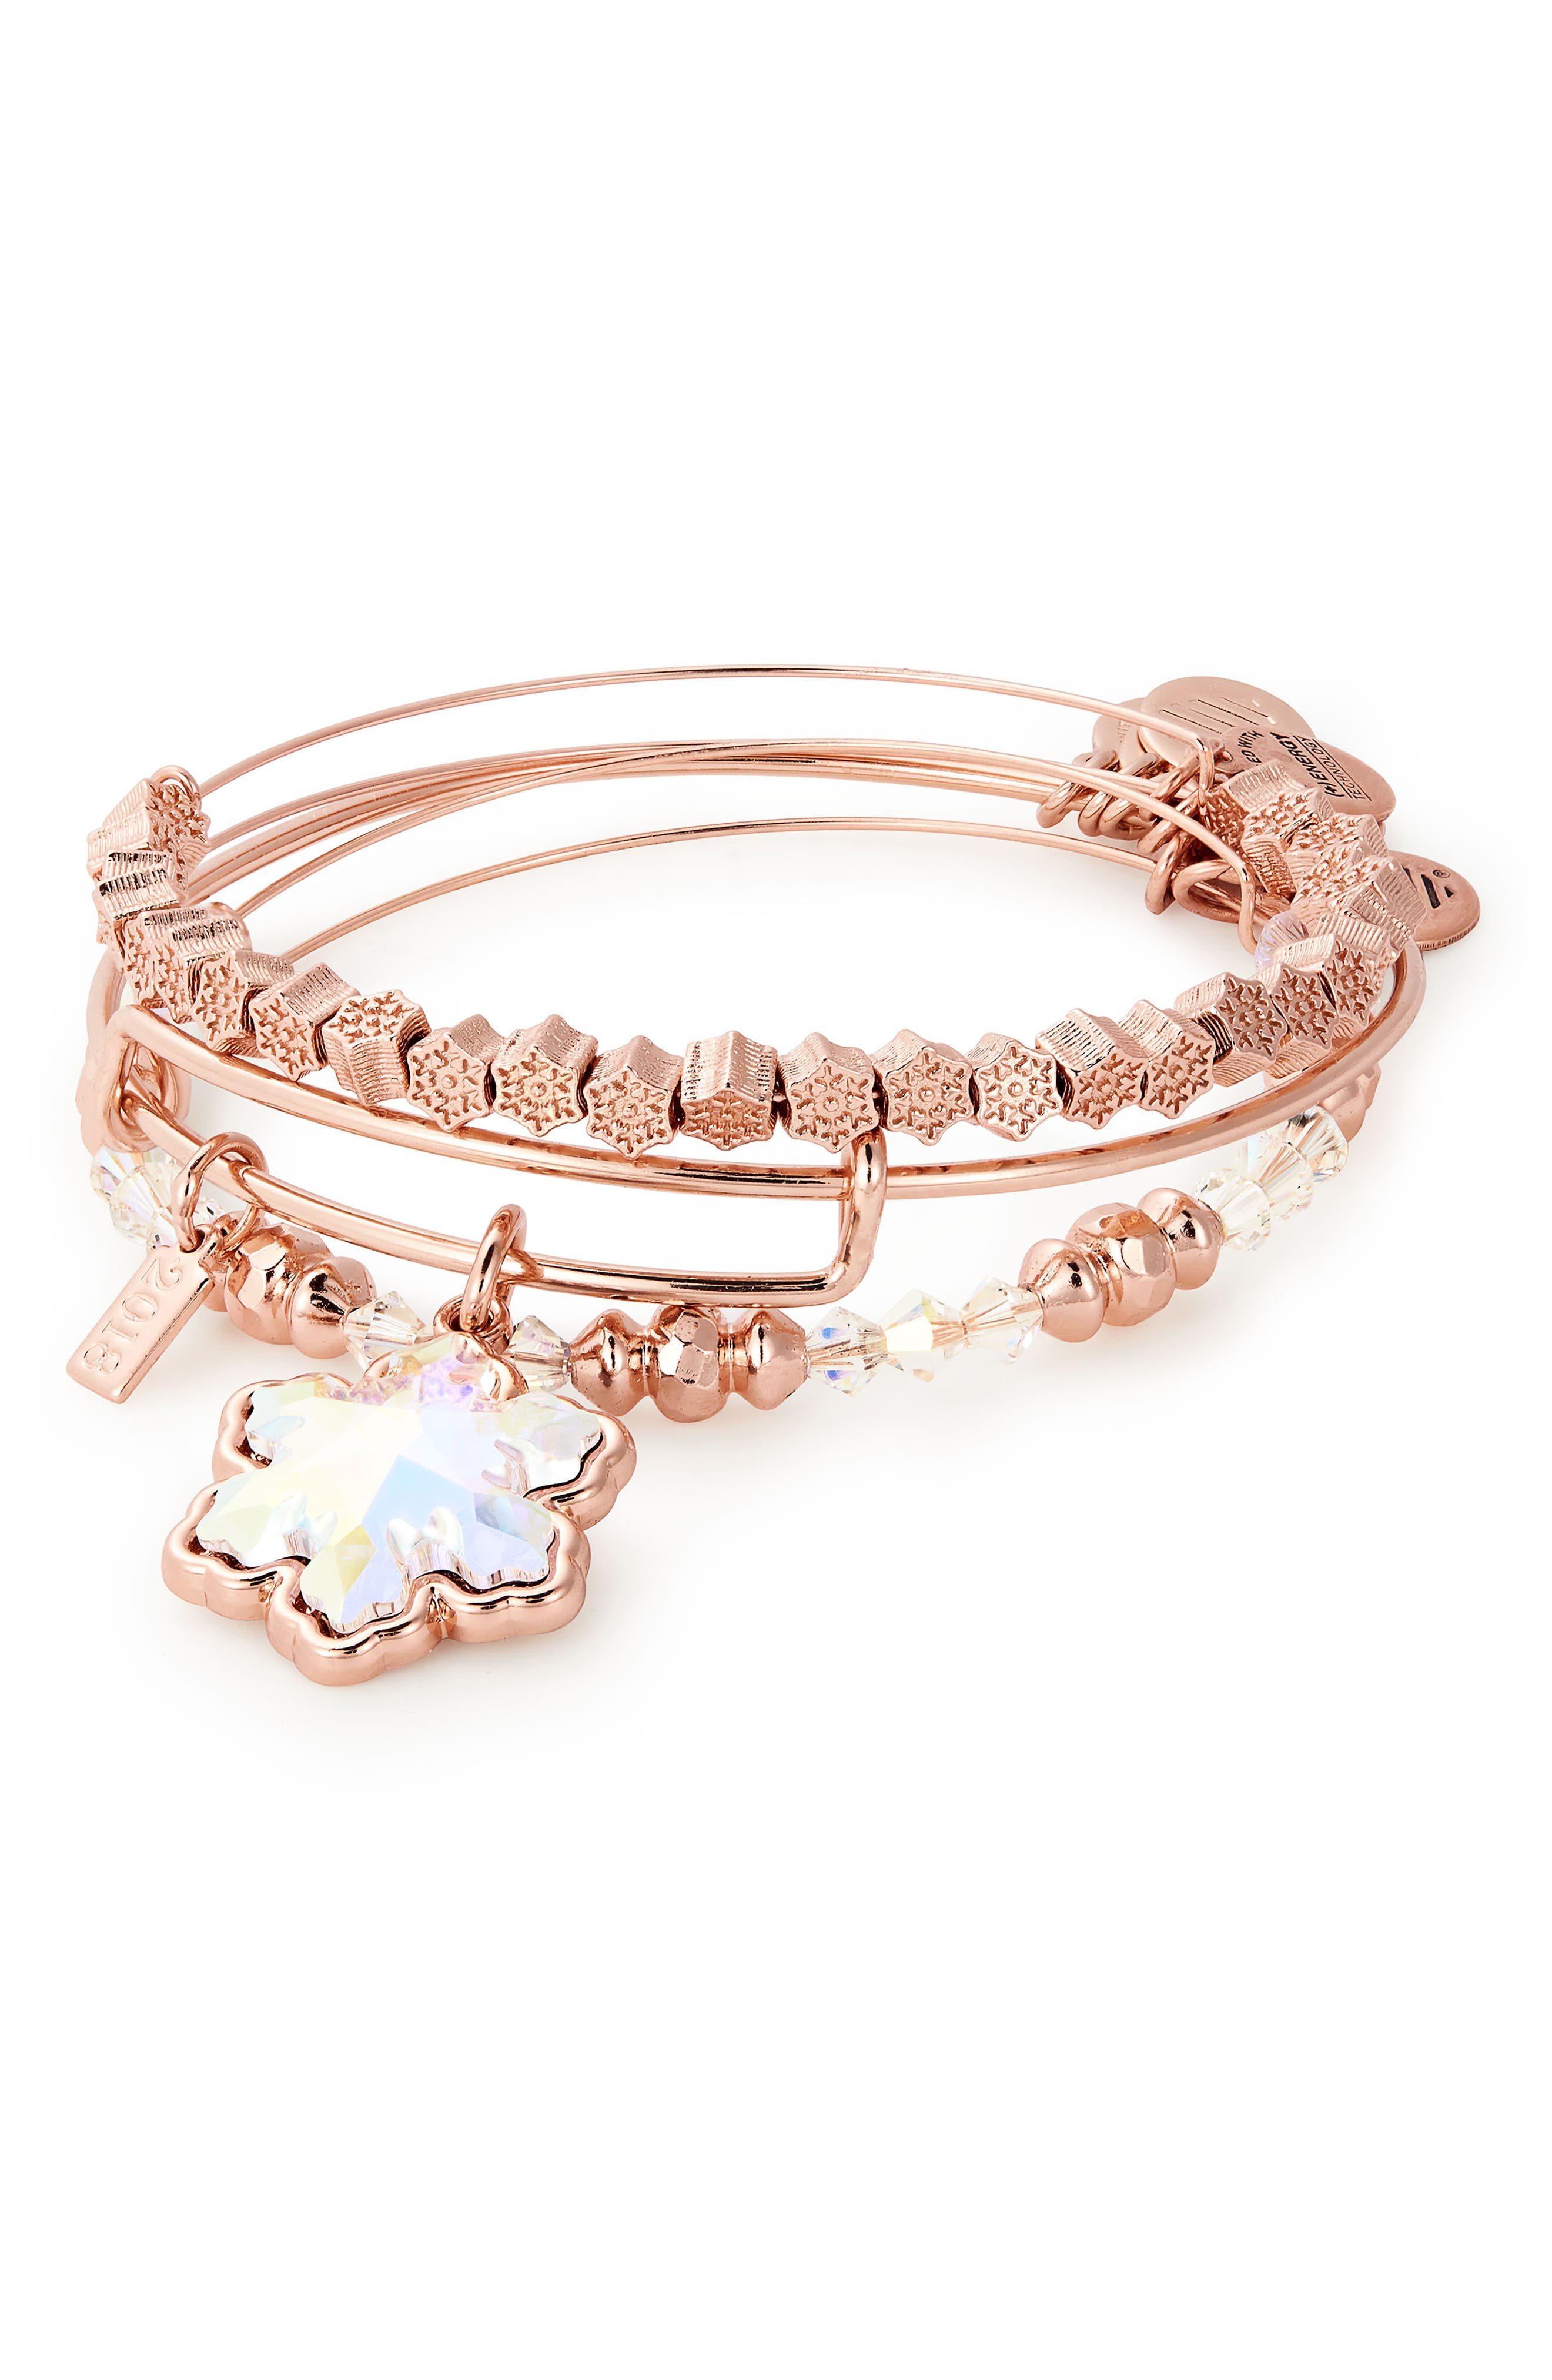 Snowflake Set of 3 Adjustable Wire Bangles,                         Main,                         color, ROSE GOLD